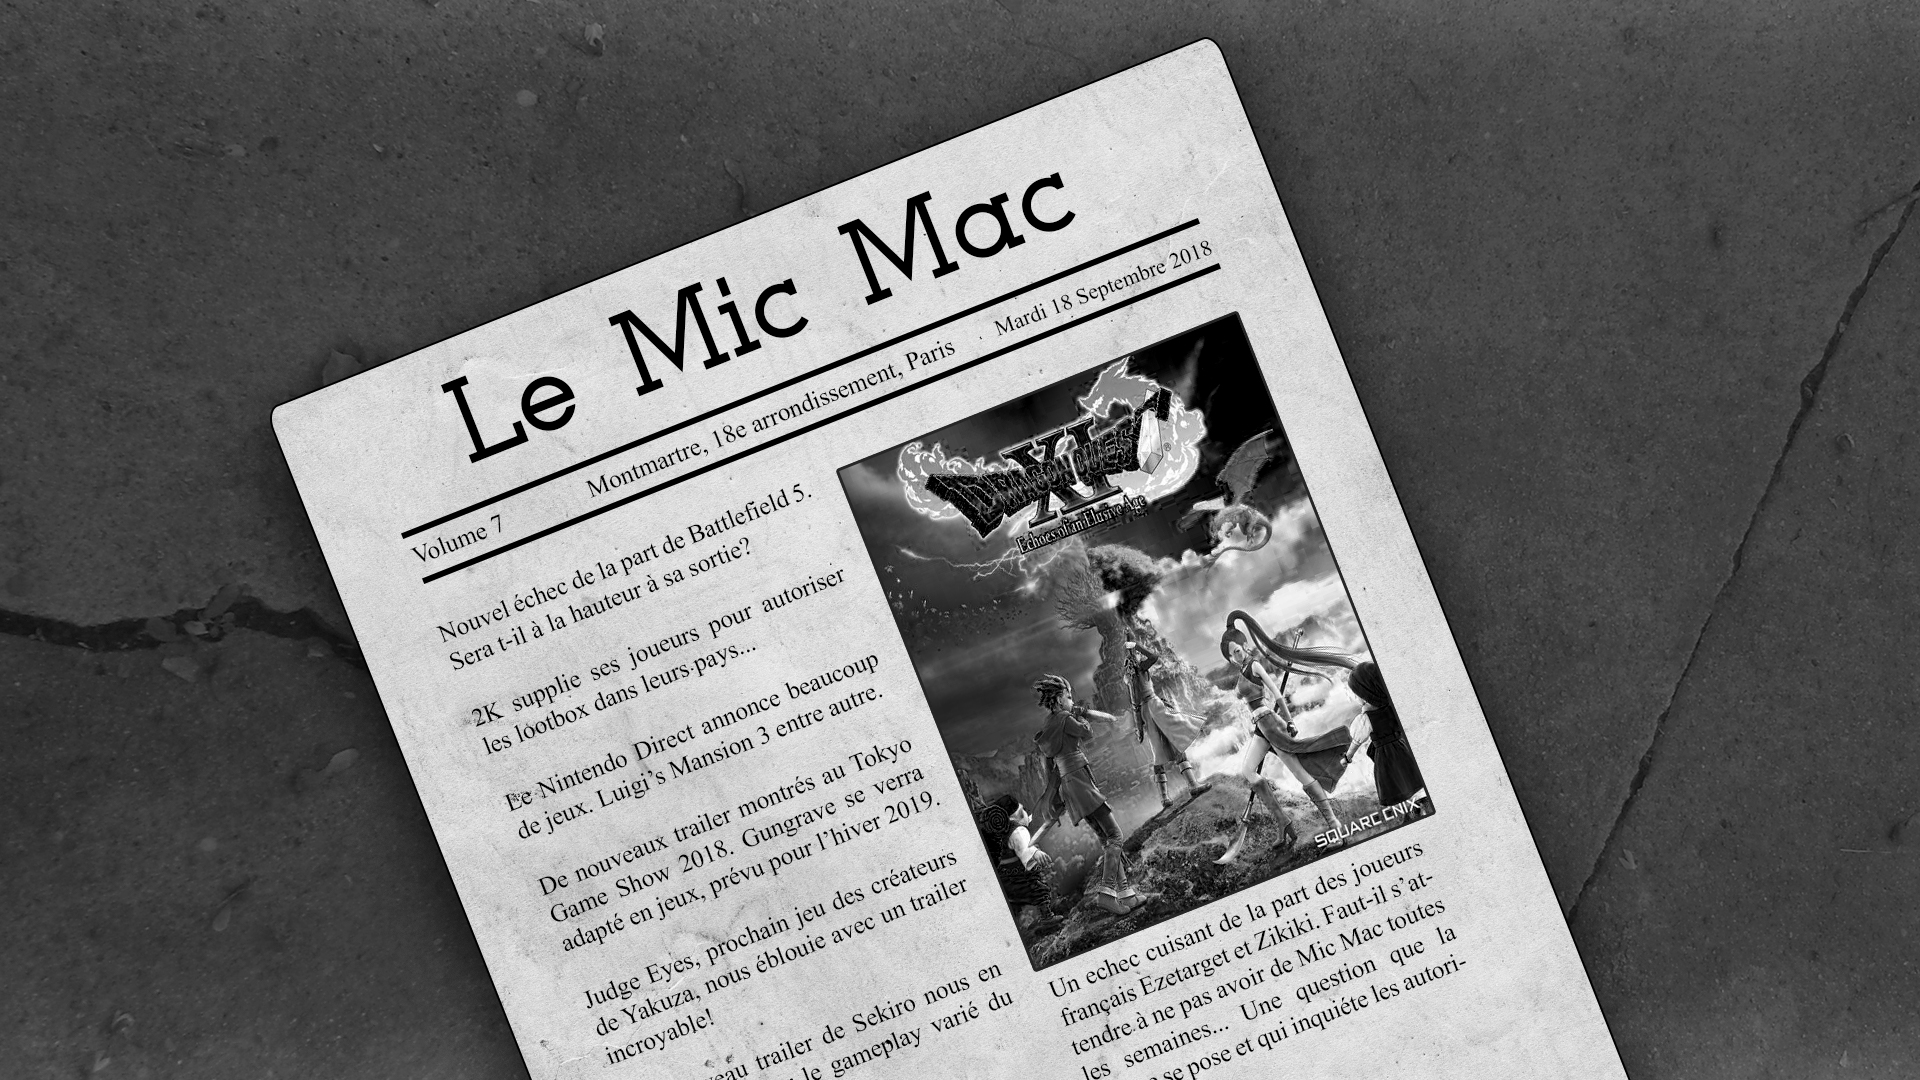 Au Tour du Mic Podcast – Mic Mac #7 : 11/09/2018 au 17/09/2018